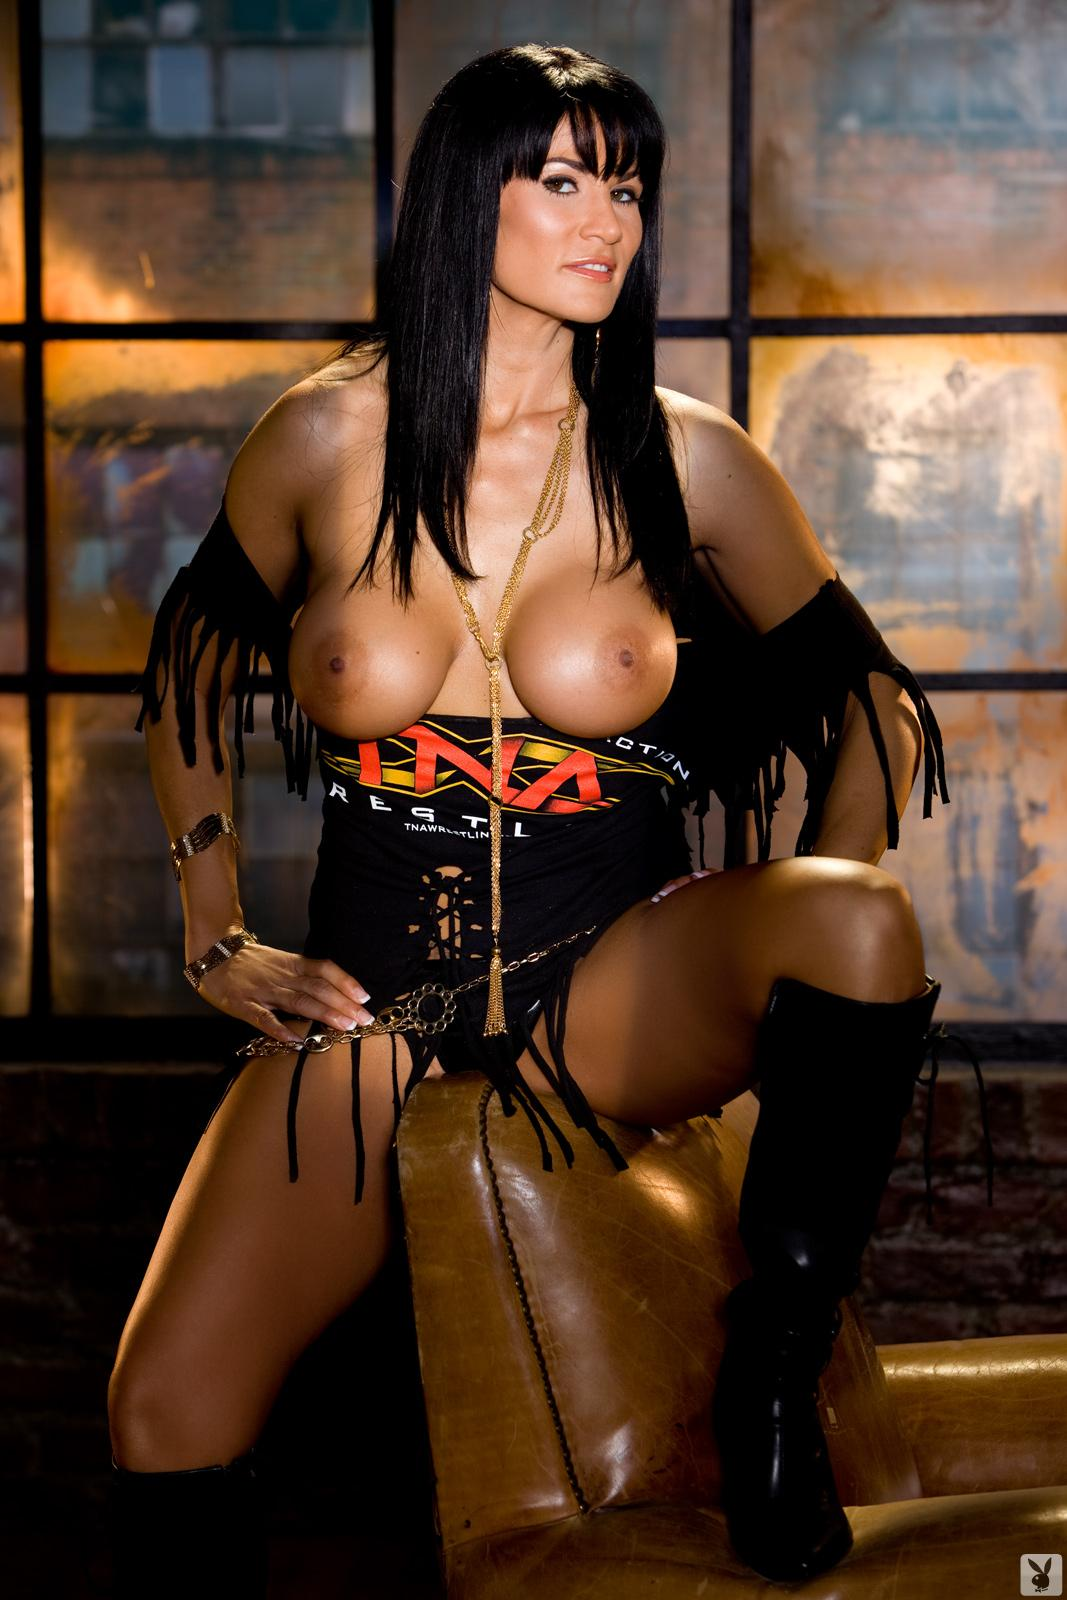 Tna knock outs nude